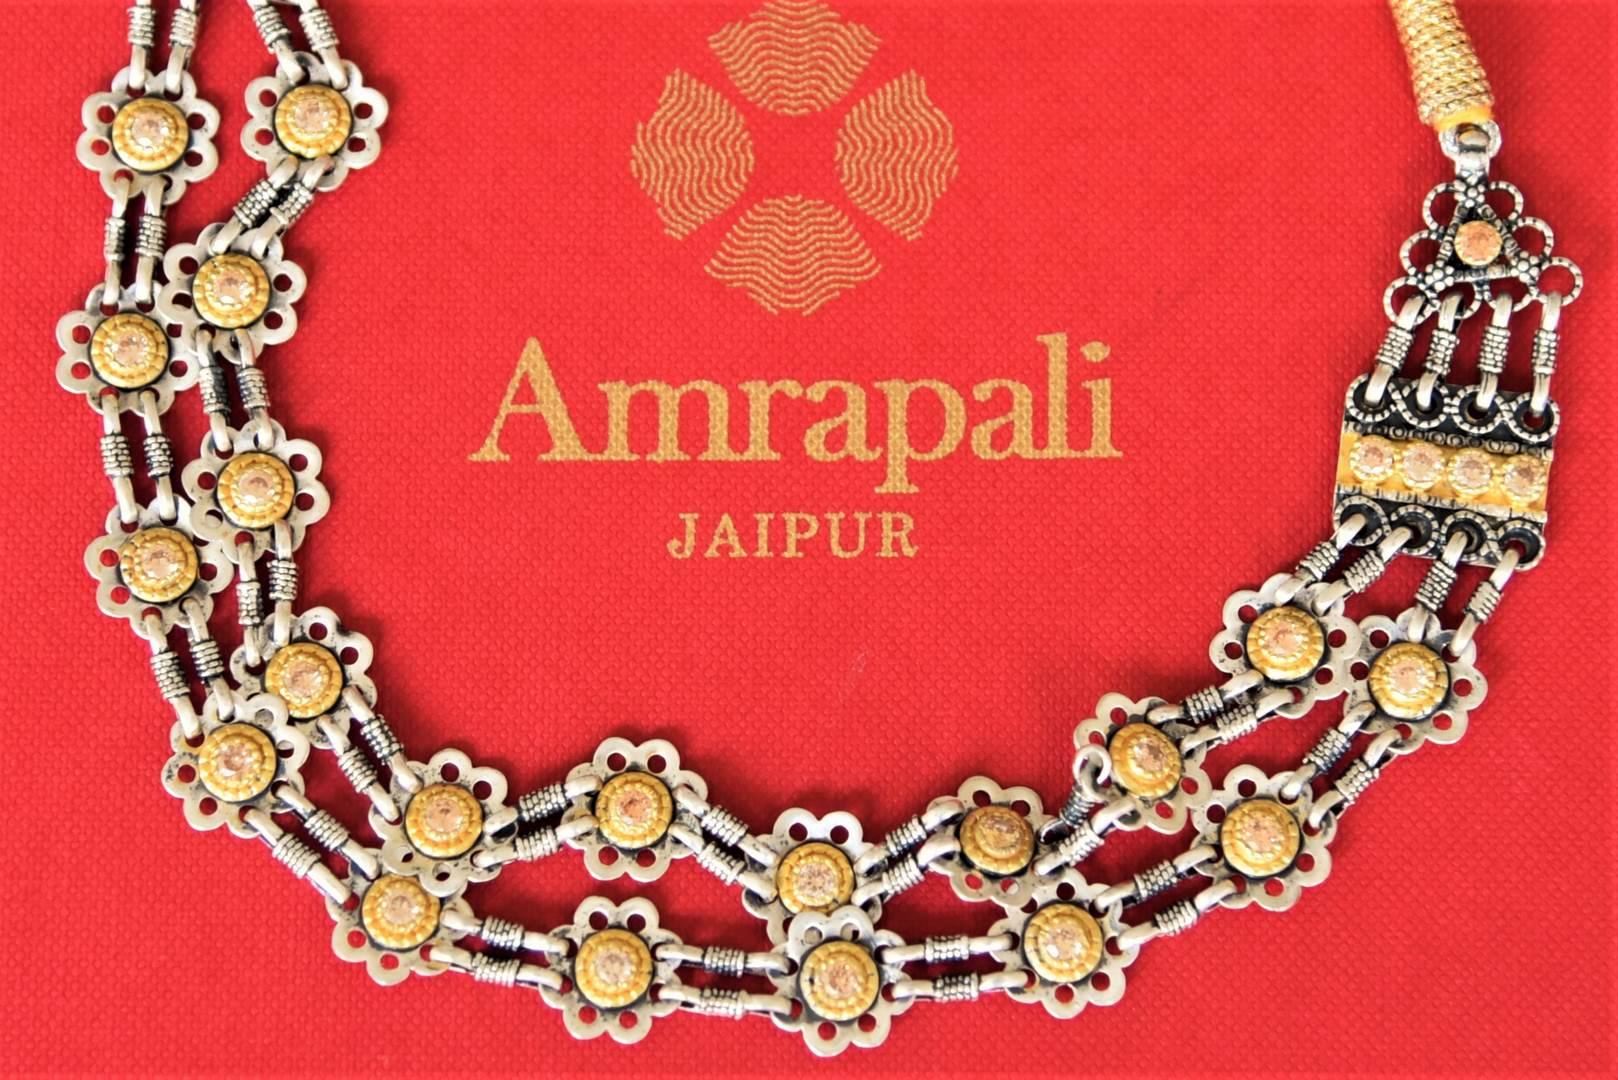 Shop Amrapali silver gold plated two-tone necklace online in USA. Add spark to your festive style with beautiful silver gold plated necklace, fashion jewelry in USA from Pure Elegance Indian fashion store.-flatlay